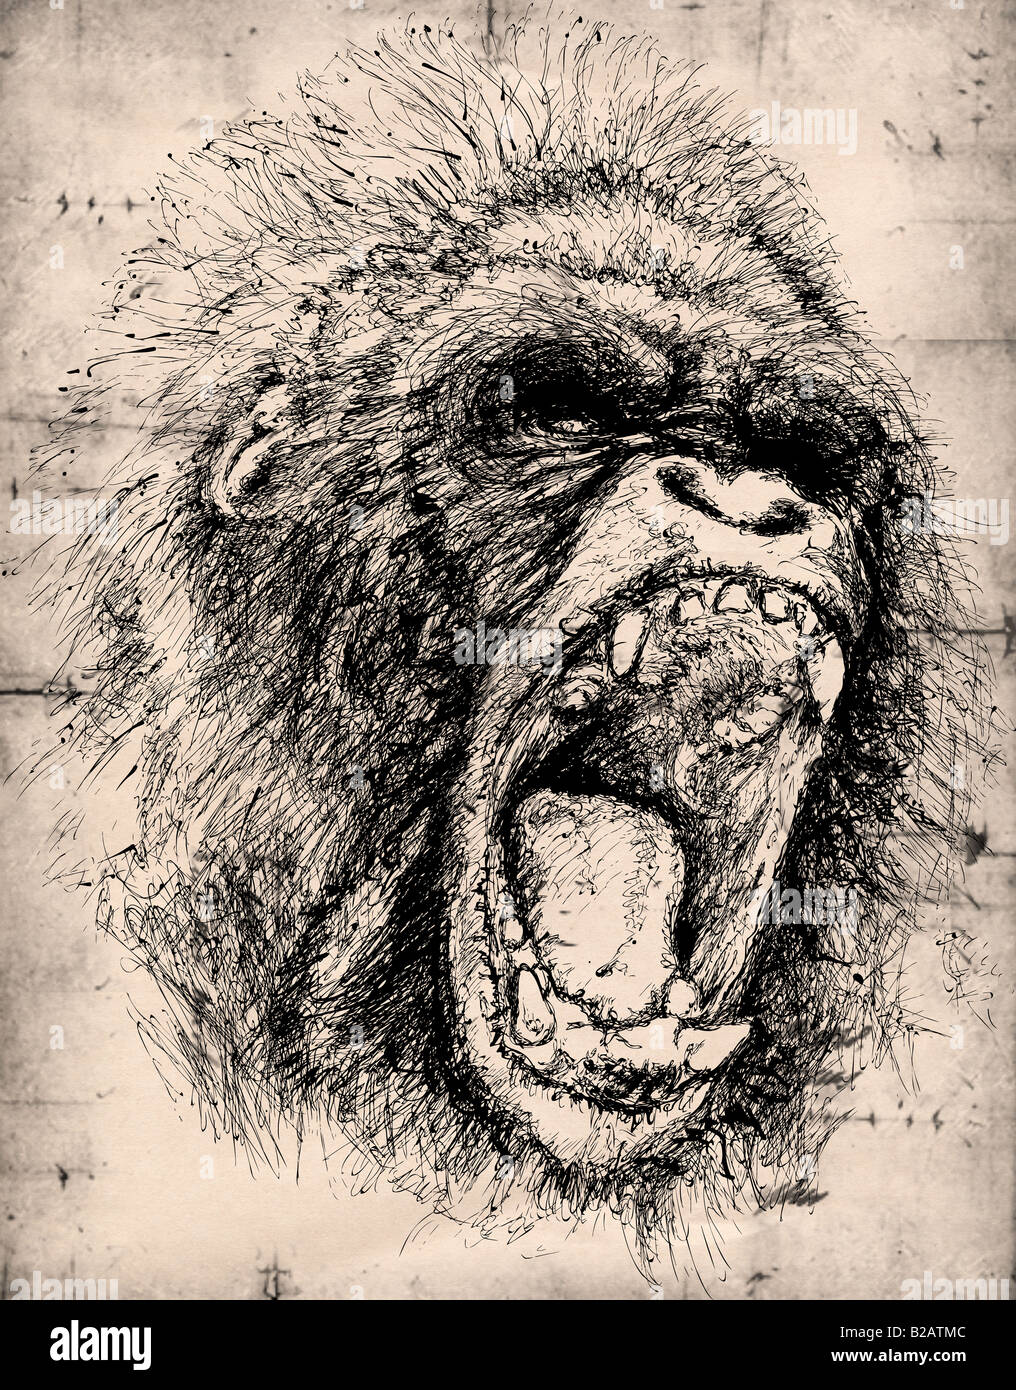 Gorilla pencil drawing stock photo 18678588 alamy